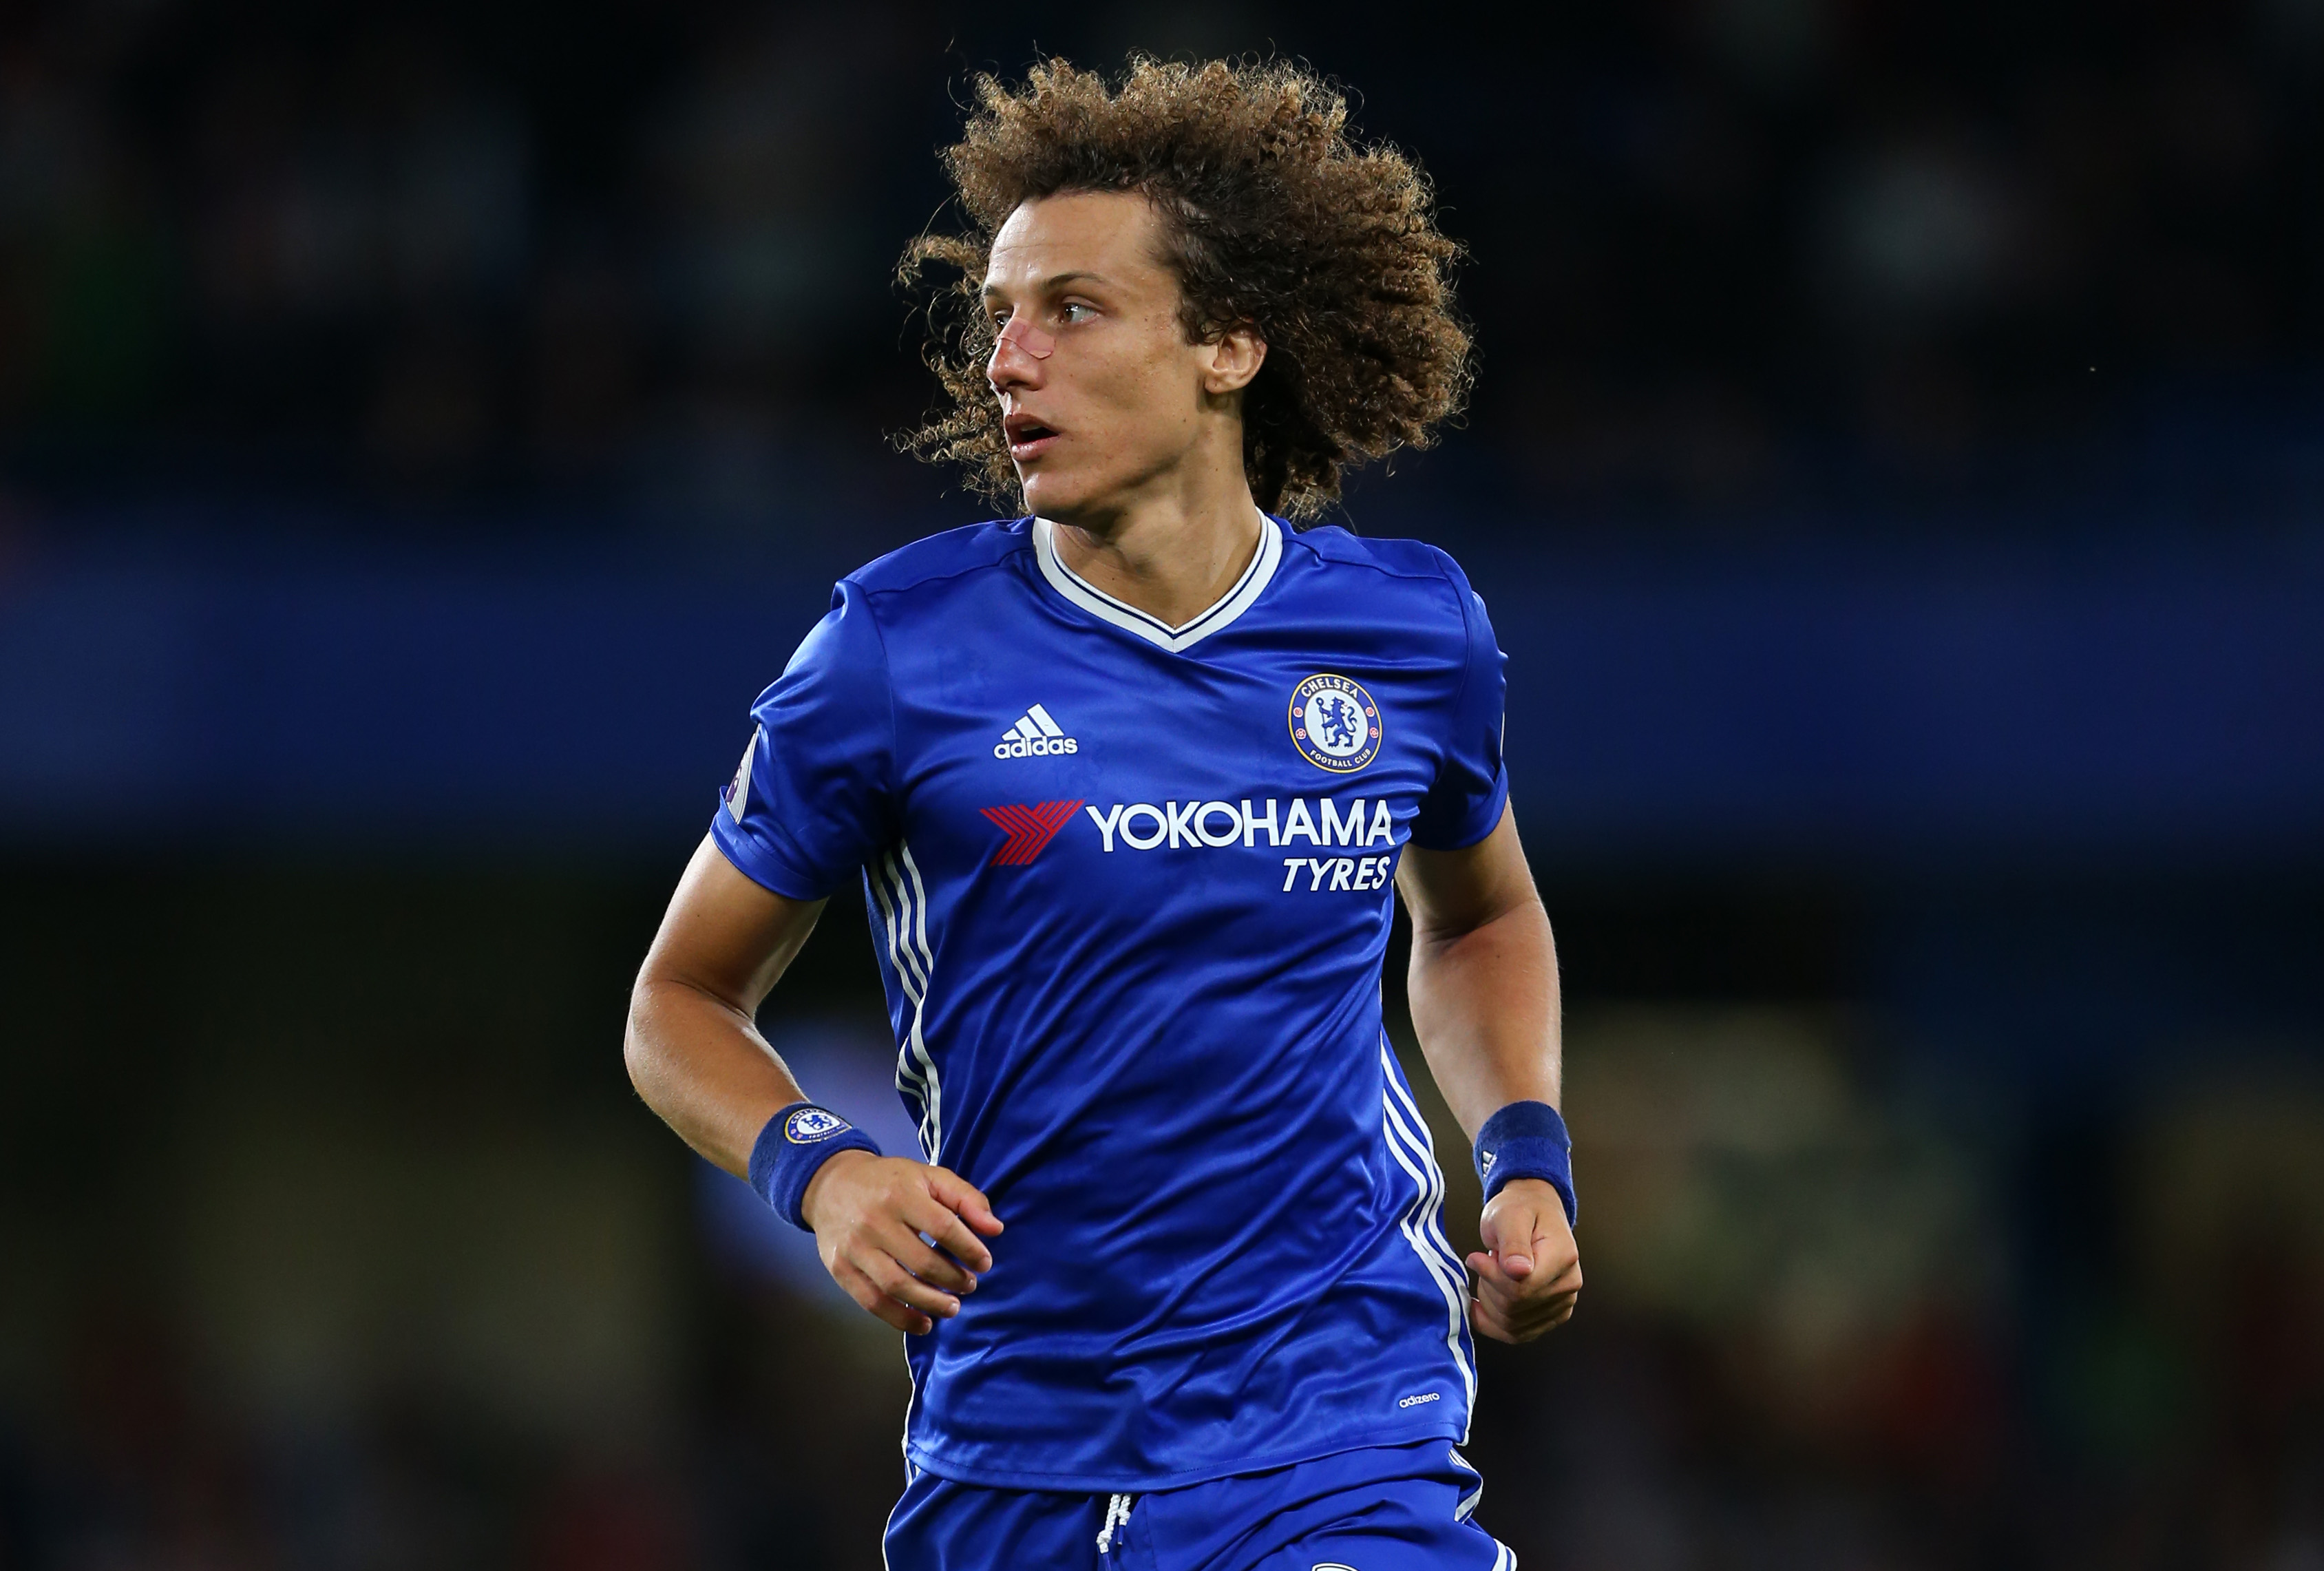 Two goals explain the David Luiz experience for Chelsea